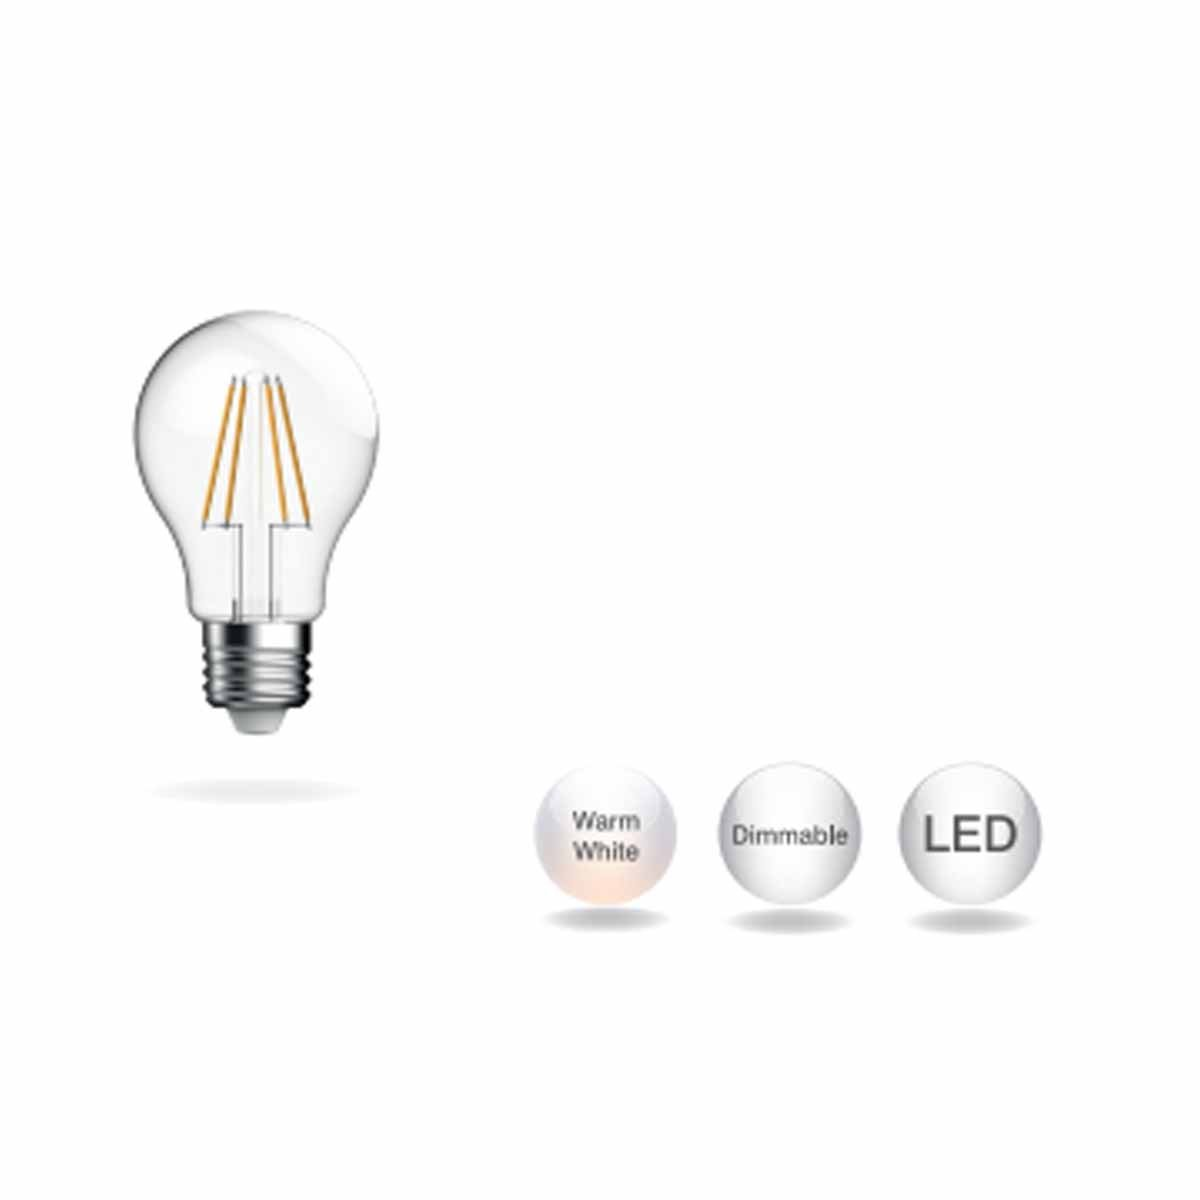 A60 Filament 7.7W 1055lm Dimmable  2700K E27  Clear 75W